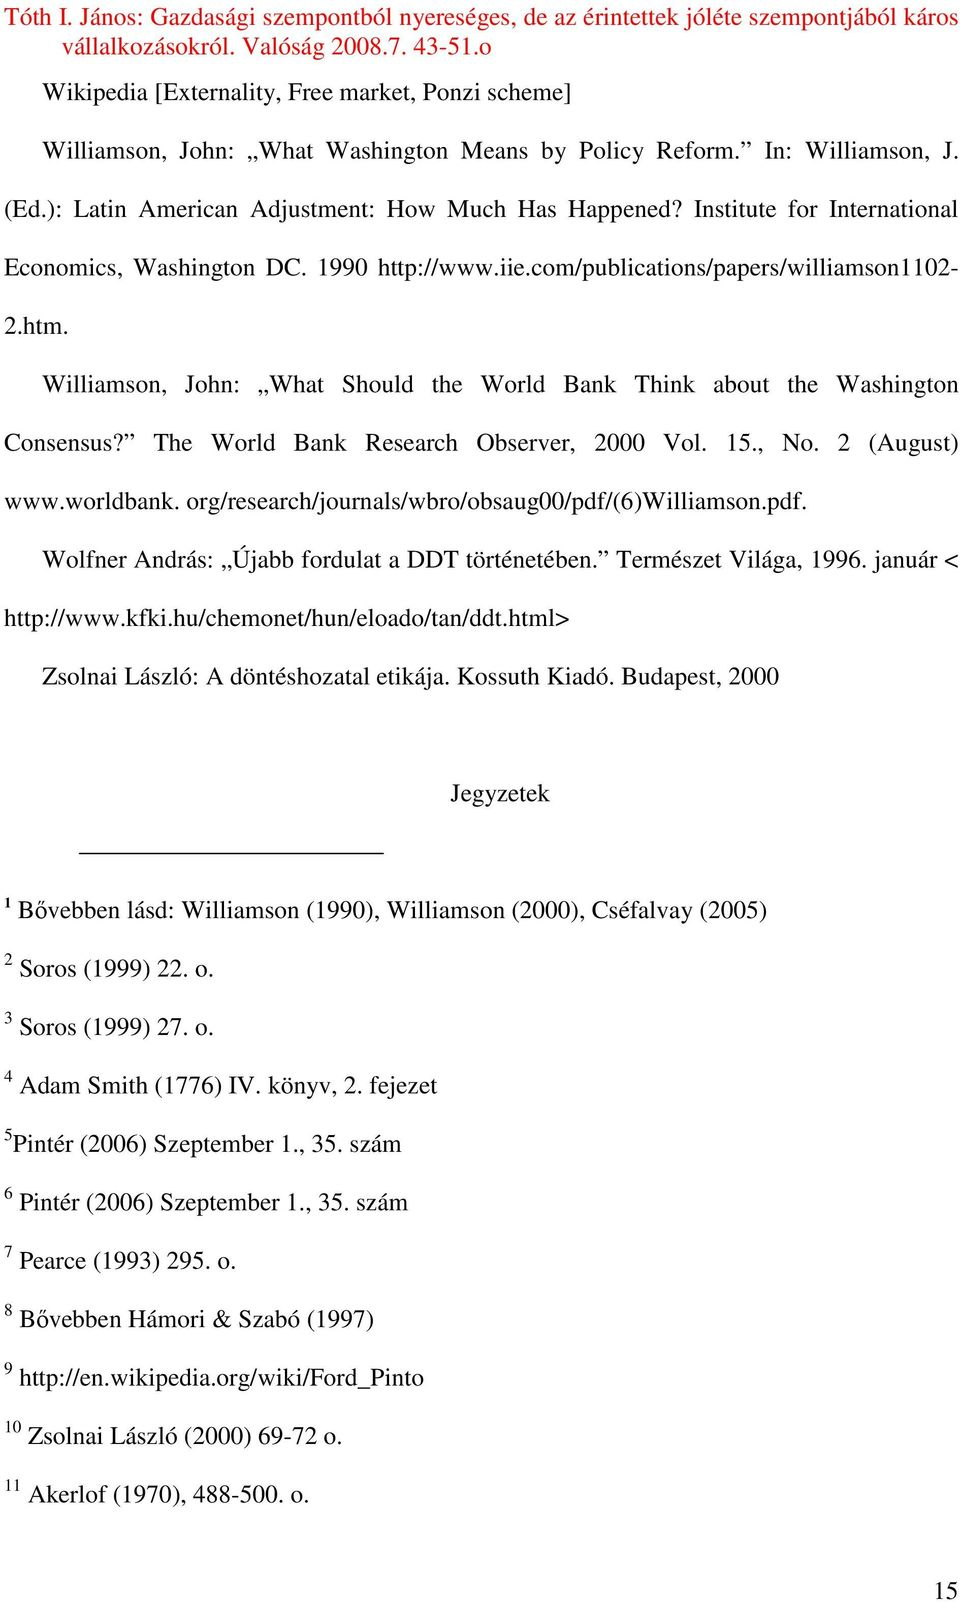 Williamson, John: What Should the World Bank Think about the Washington Consensus? The World Bank Research Observer, 2000 Vol. 15., No. 2 (August) www.worldbank.